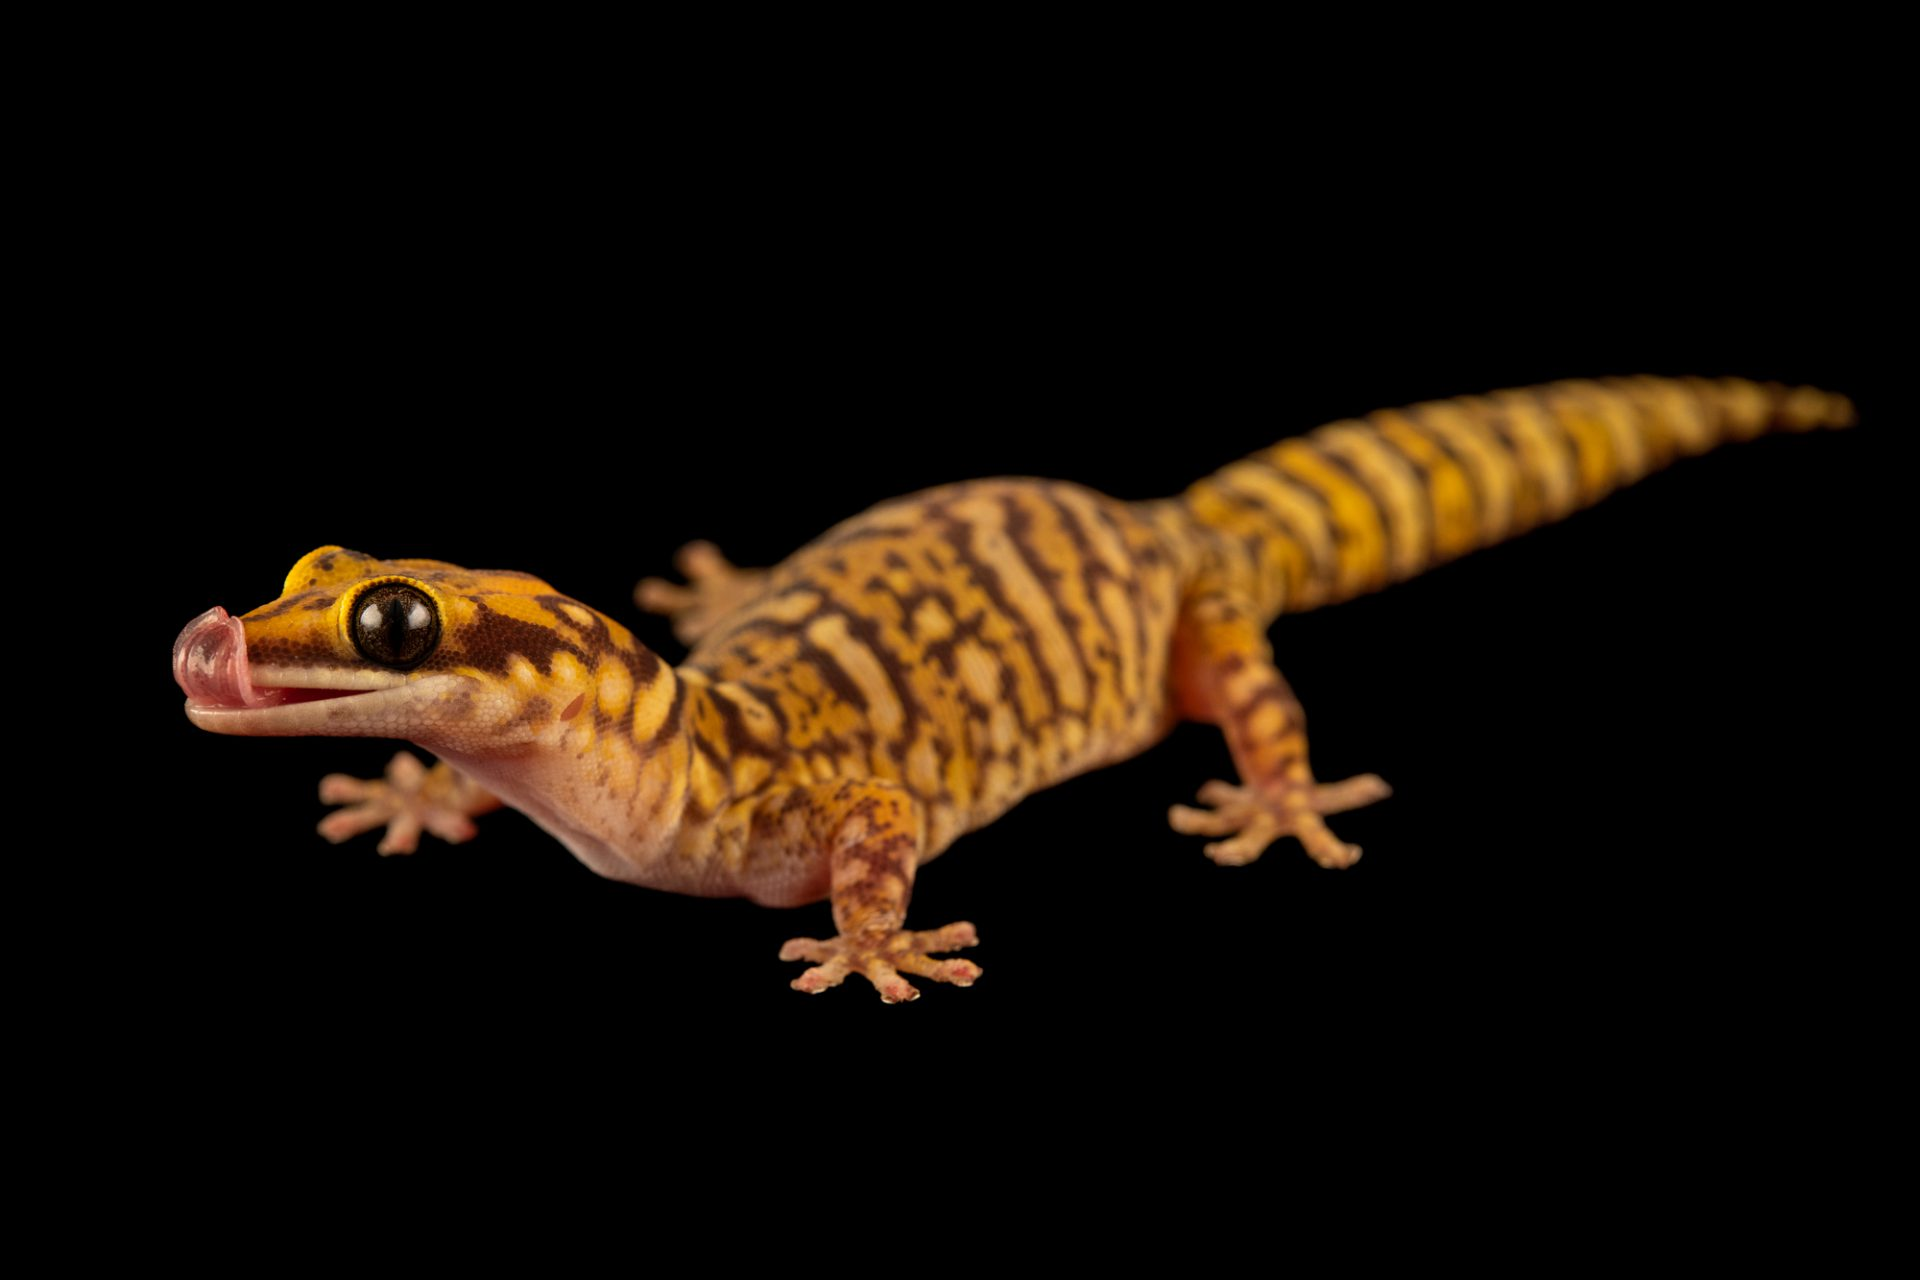 Photo: A CoggerÕs velvet gecko (Oedura coggeri) from a private collection.